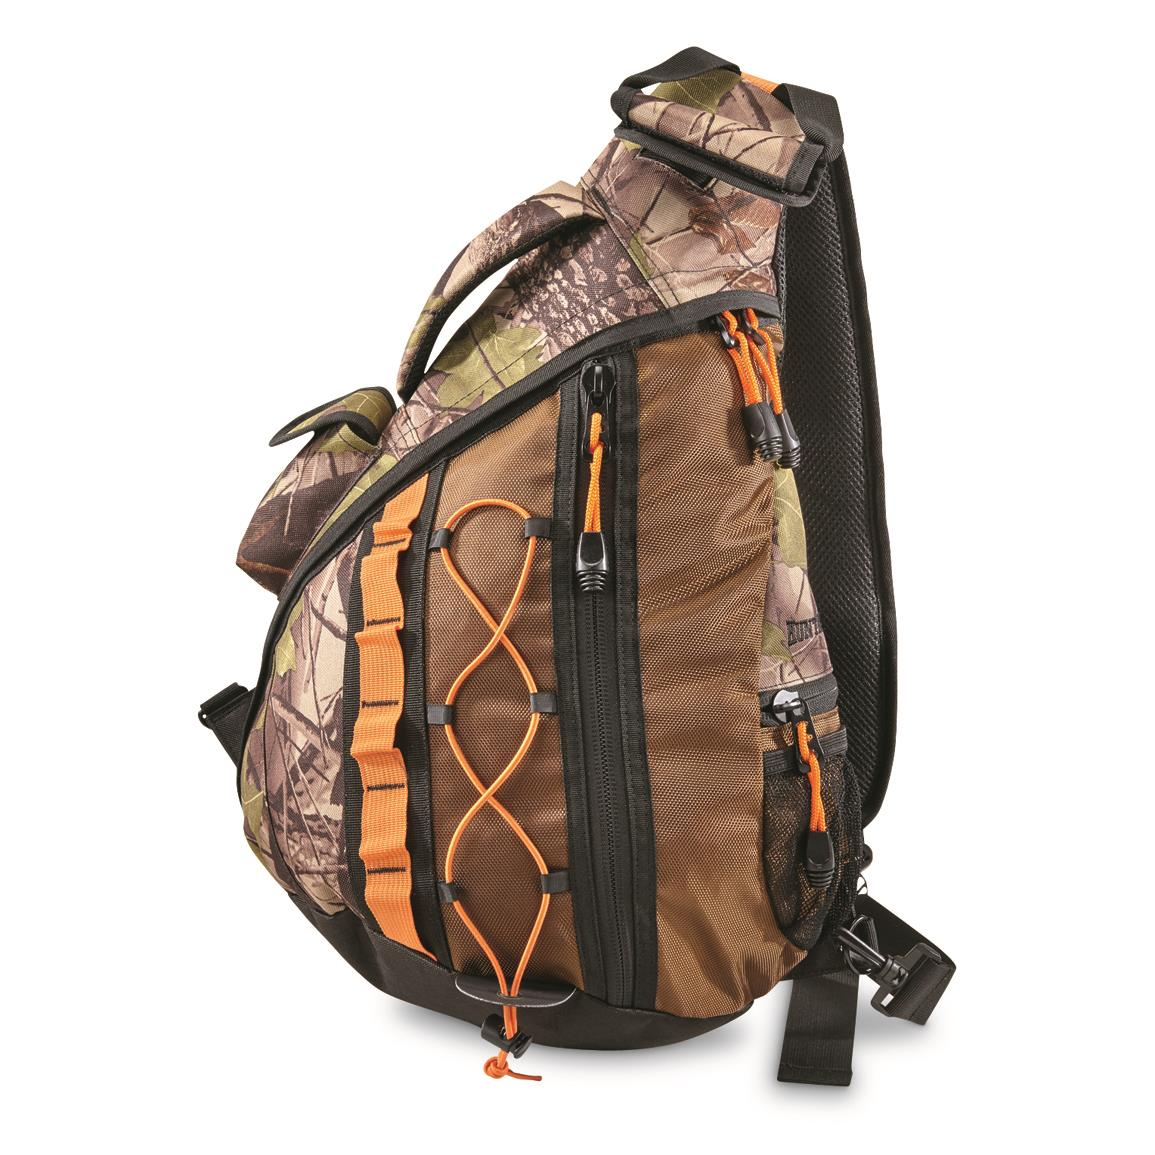 00d65a6adf2e HuntRite Sling Backpack - 697238, Hunting Backpacks at Sportsman's Guide